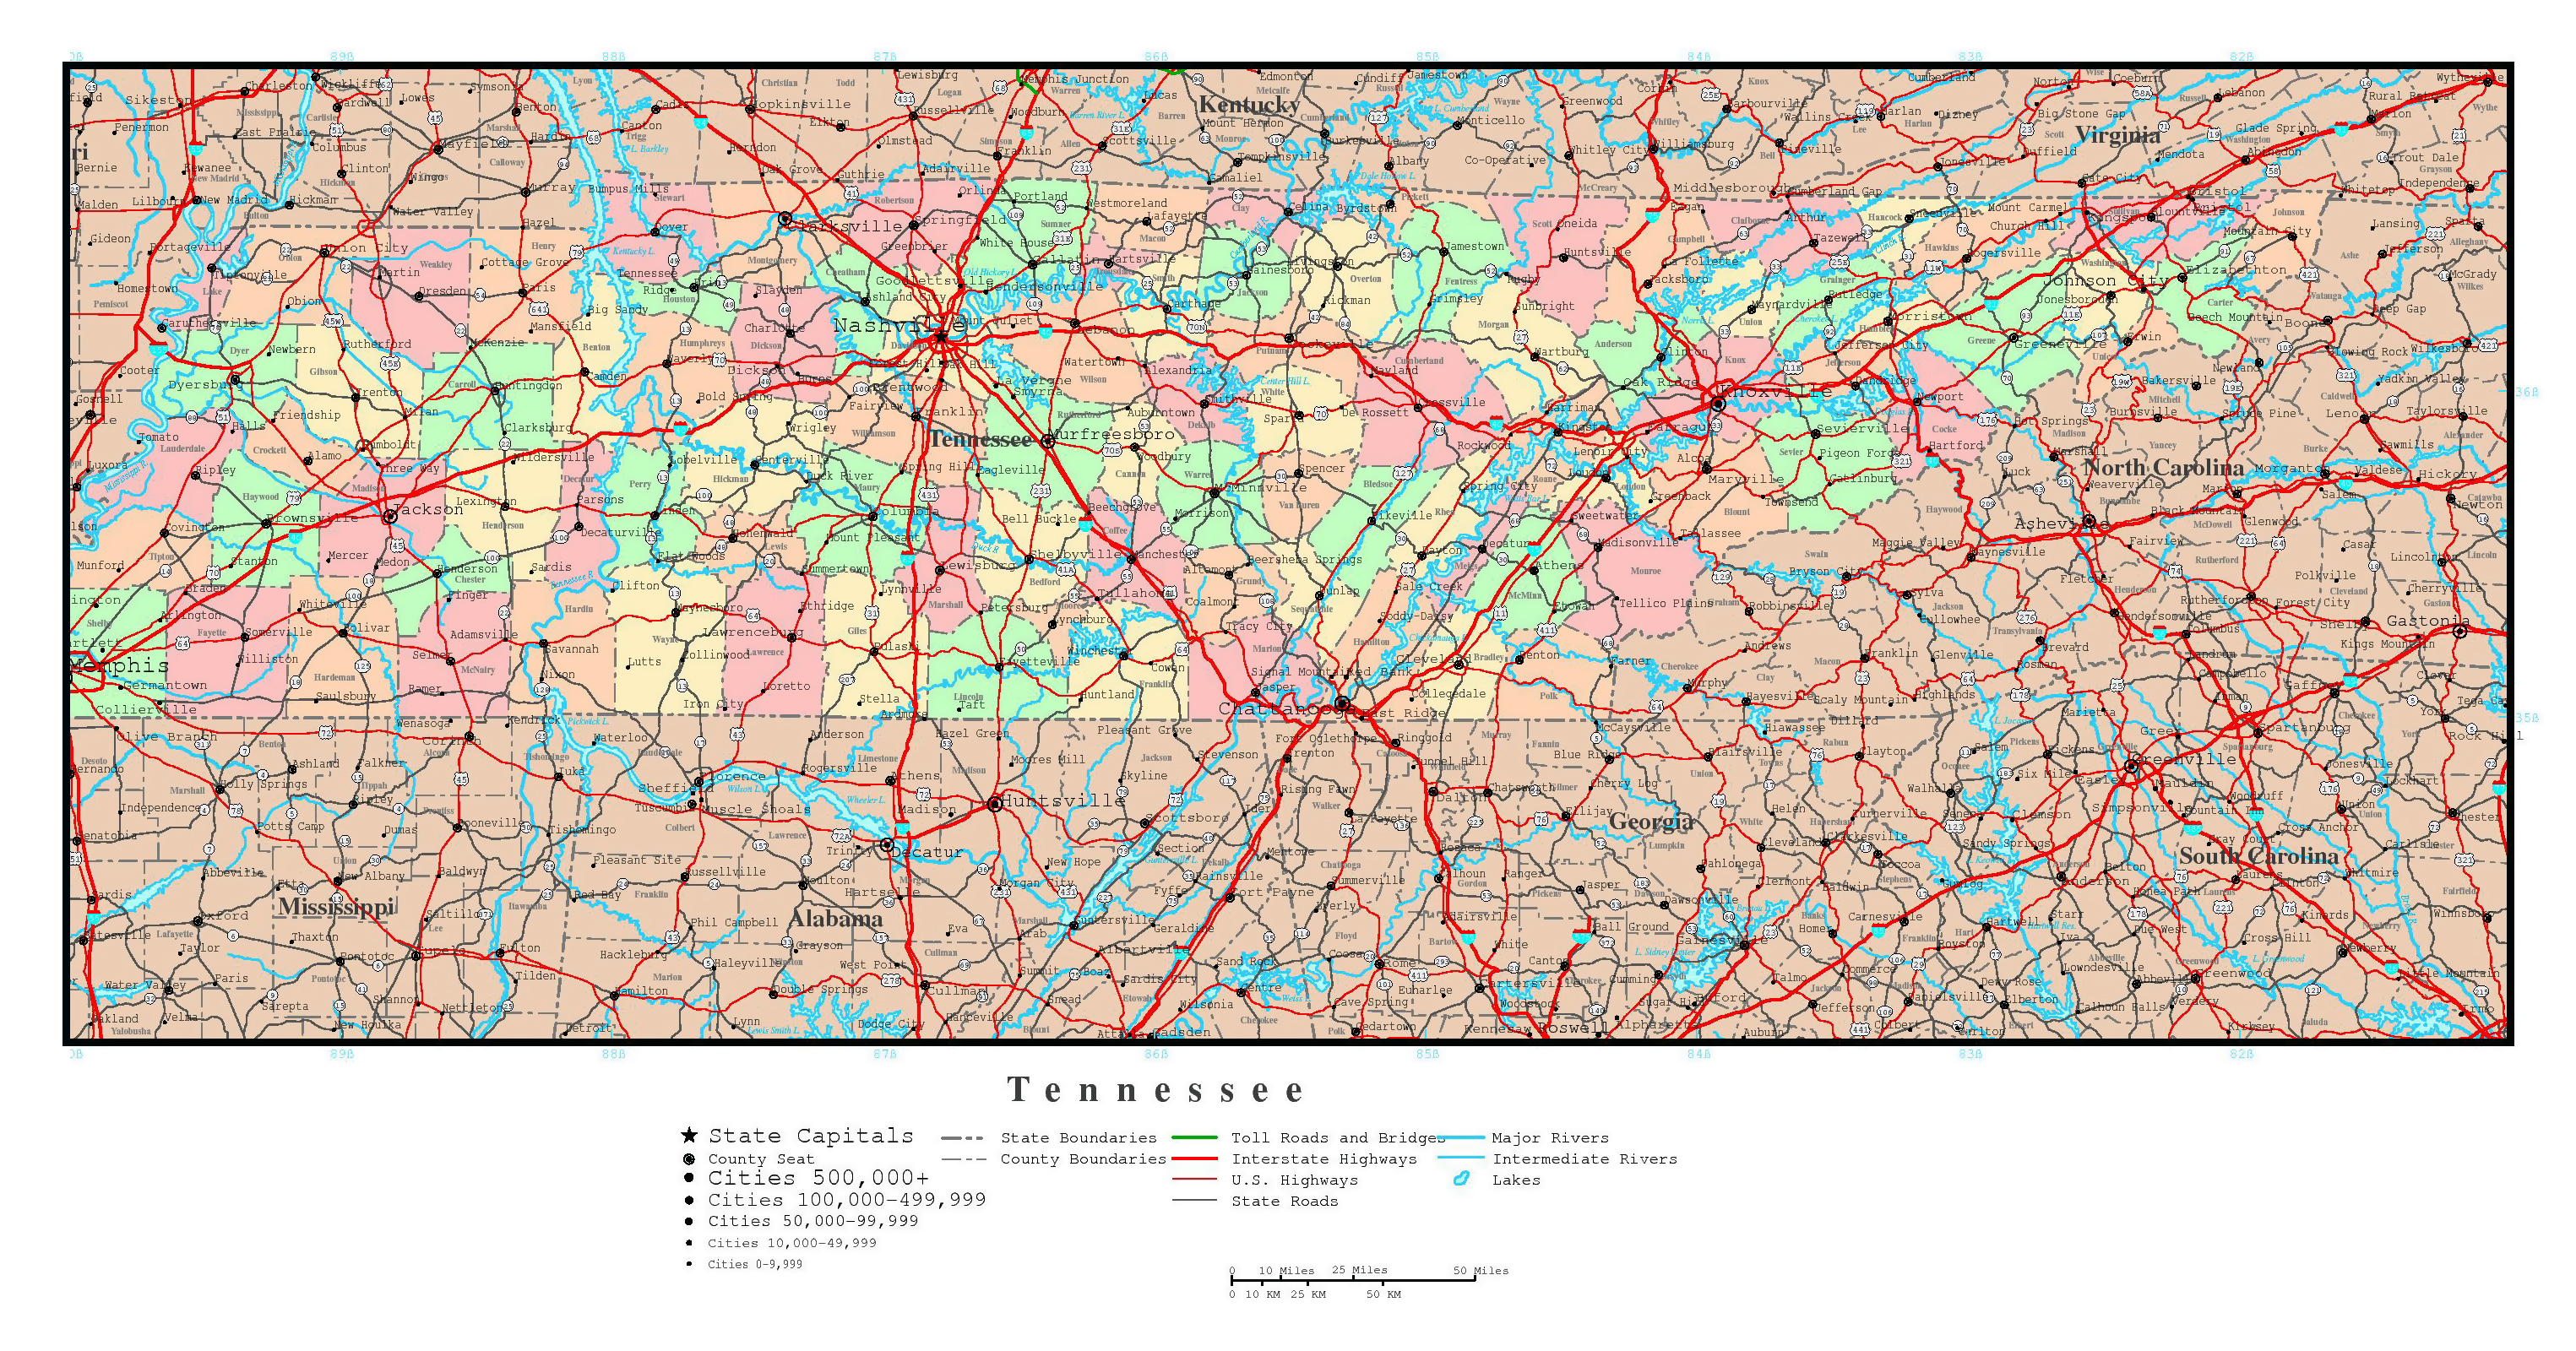 State Map Of Tennessee With Cities.Large Detailed Administrative Map Of Tennessee State With Roads